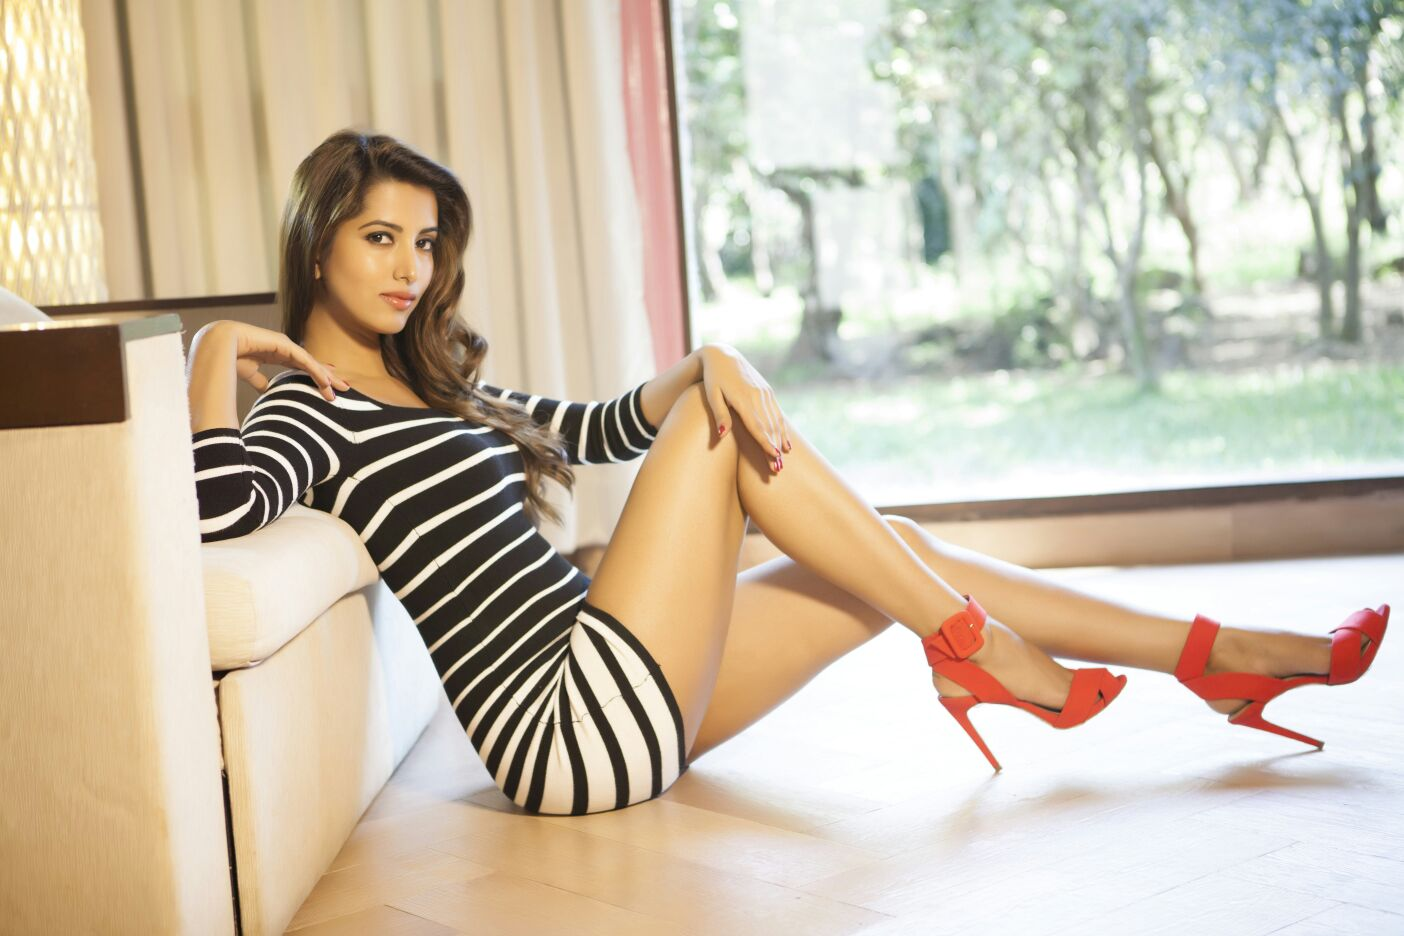 Multiple Girls In Lingerie Wallpaper 15 Hot Amp Spicy Photo S Of Manasvi Mamgai Action Jackson